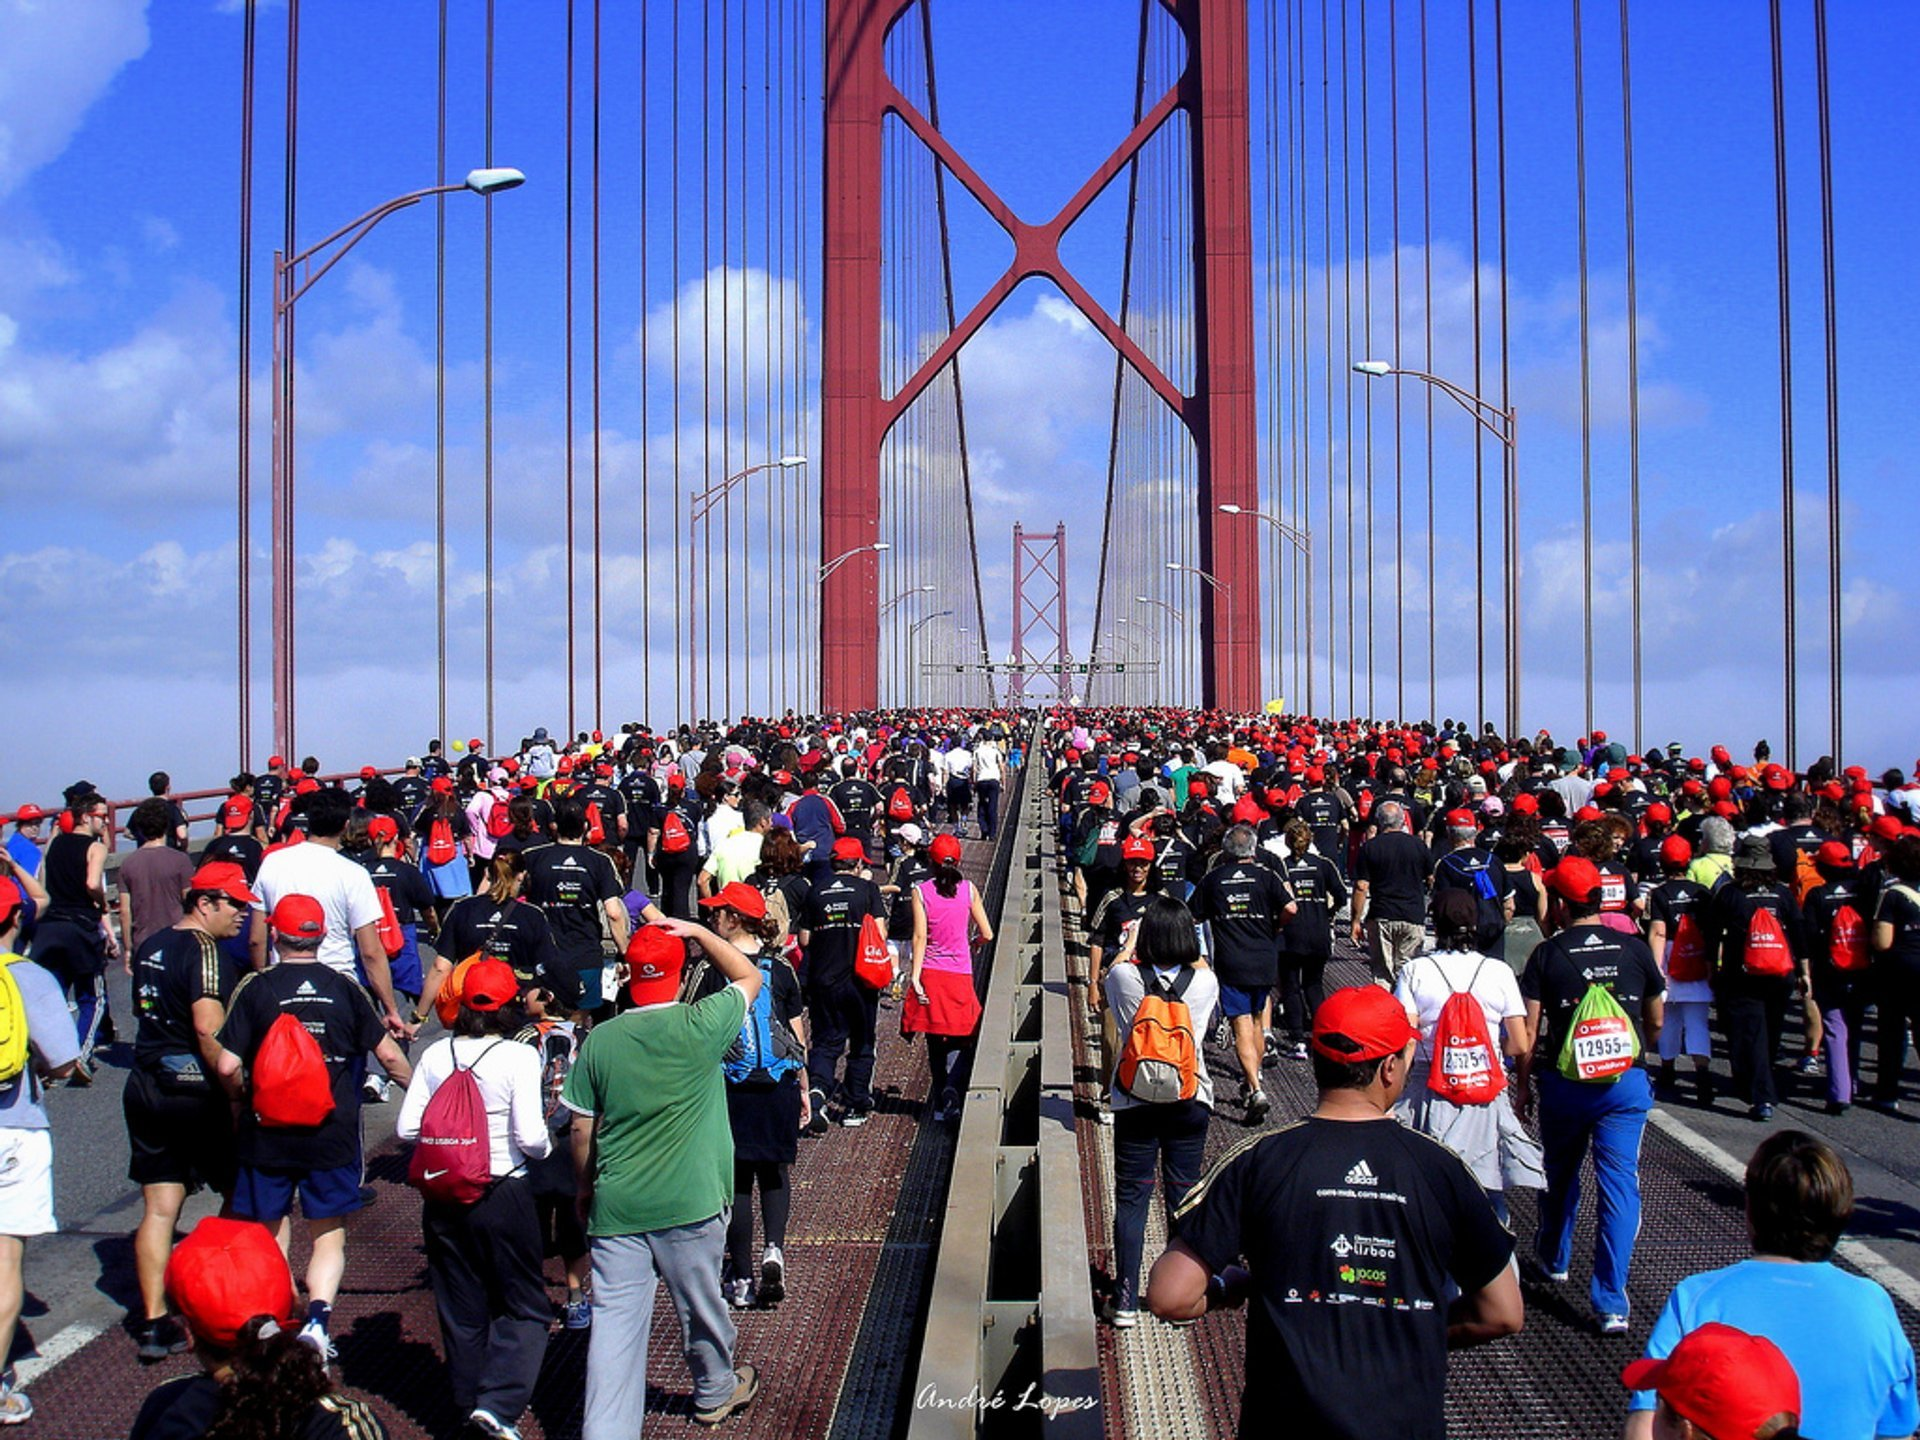 Meia Maratona de Lisboa or Lisbon Half Marathon in Portugal 2019 - Best Time